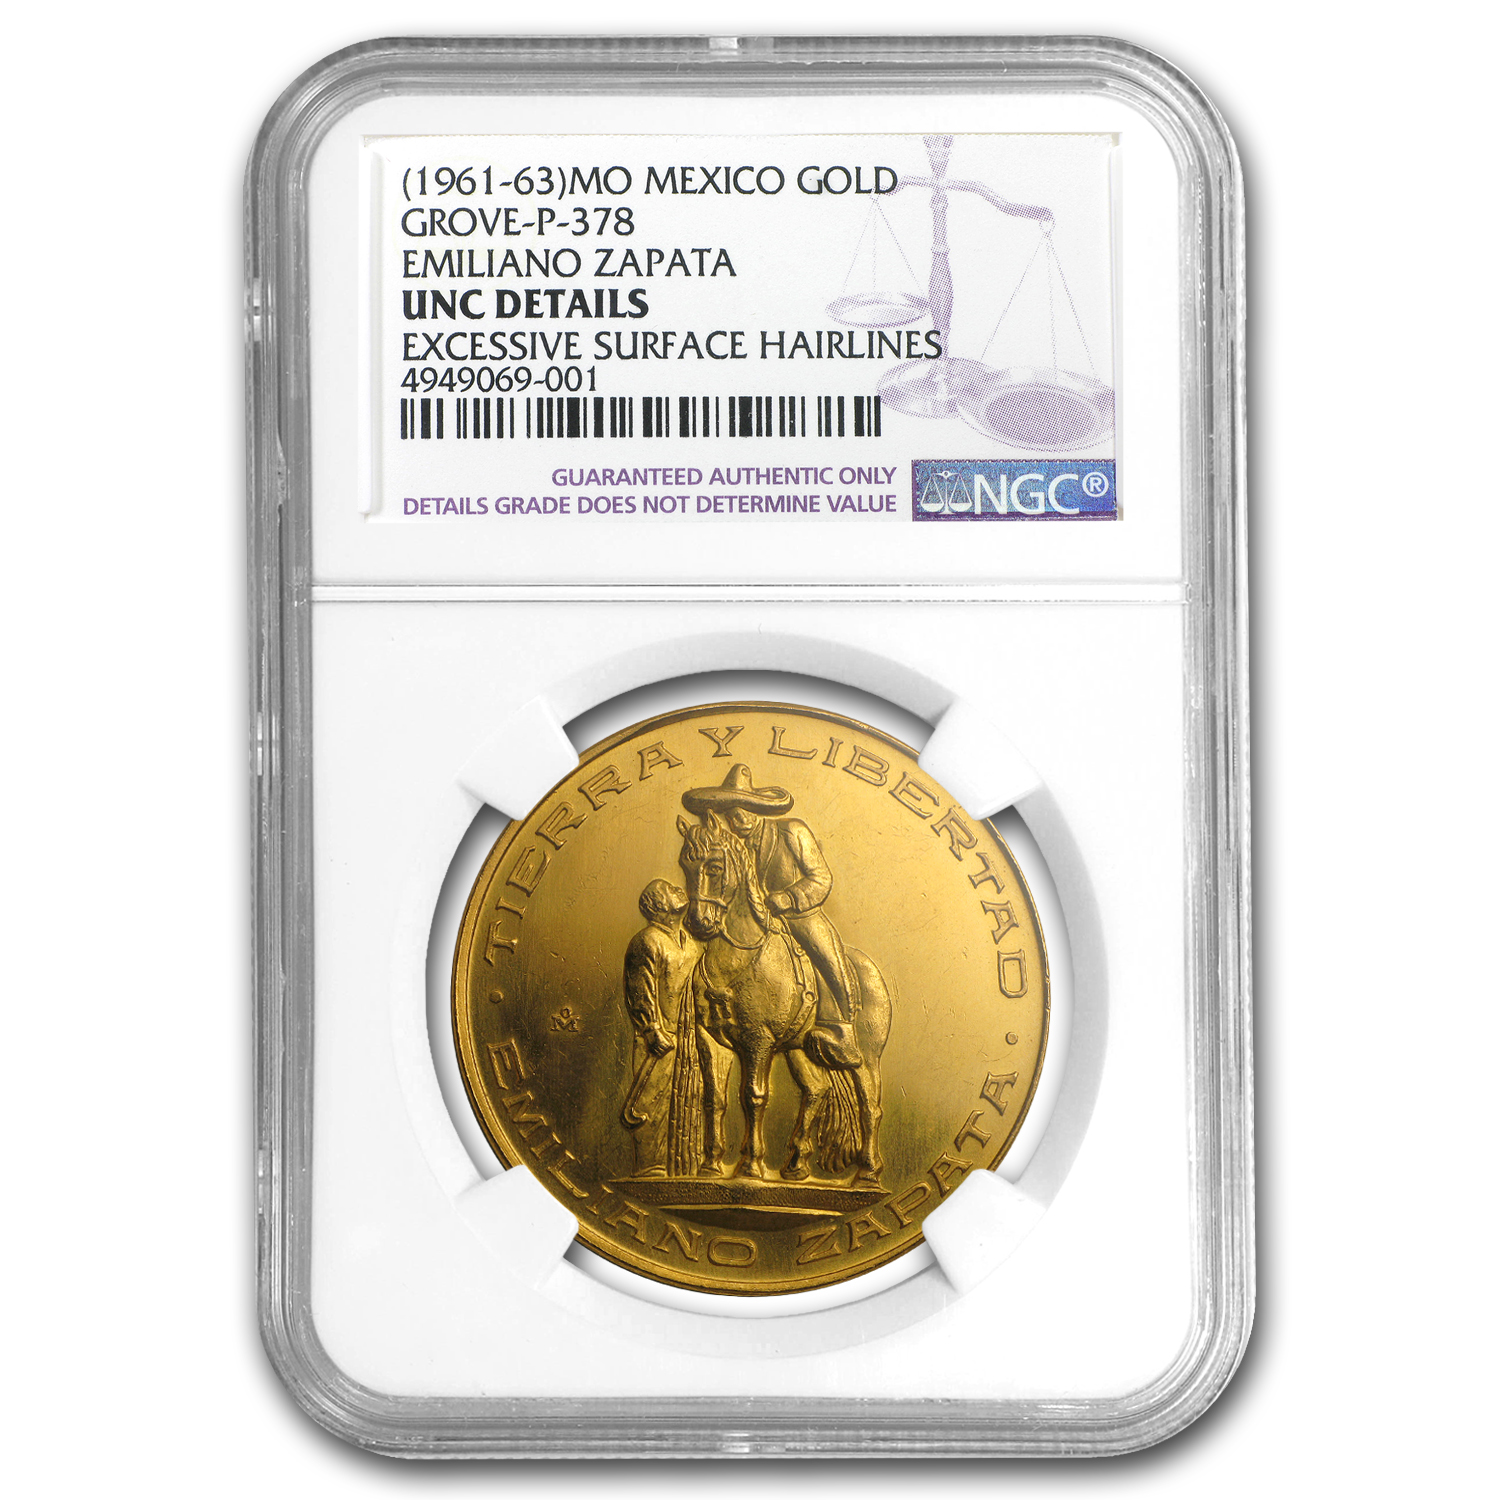 (1961-63) Mexico Gold Emiliano Zapata Medal Unc Details NGC